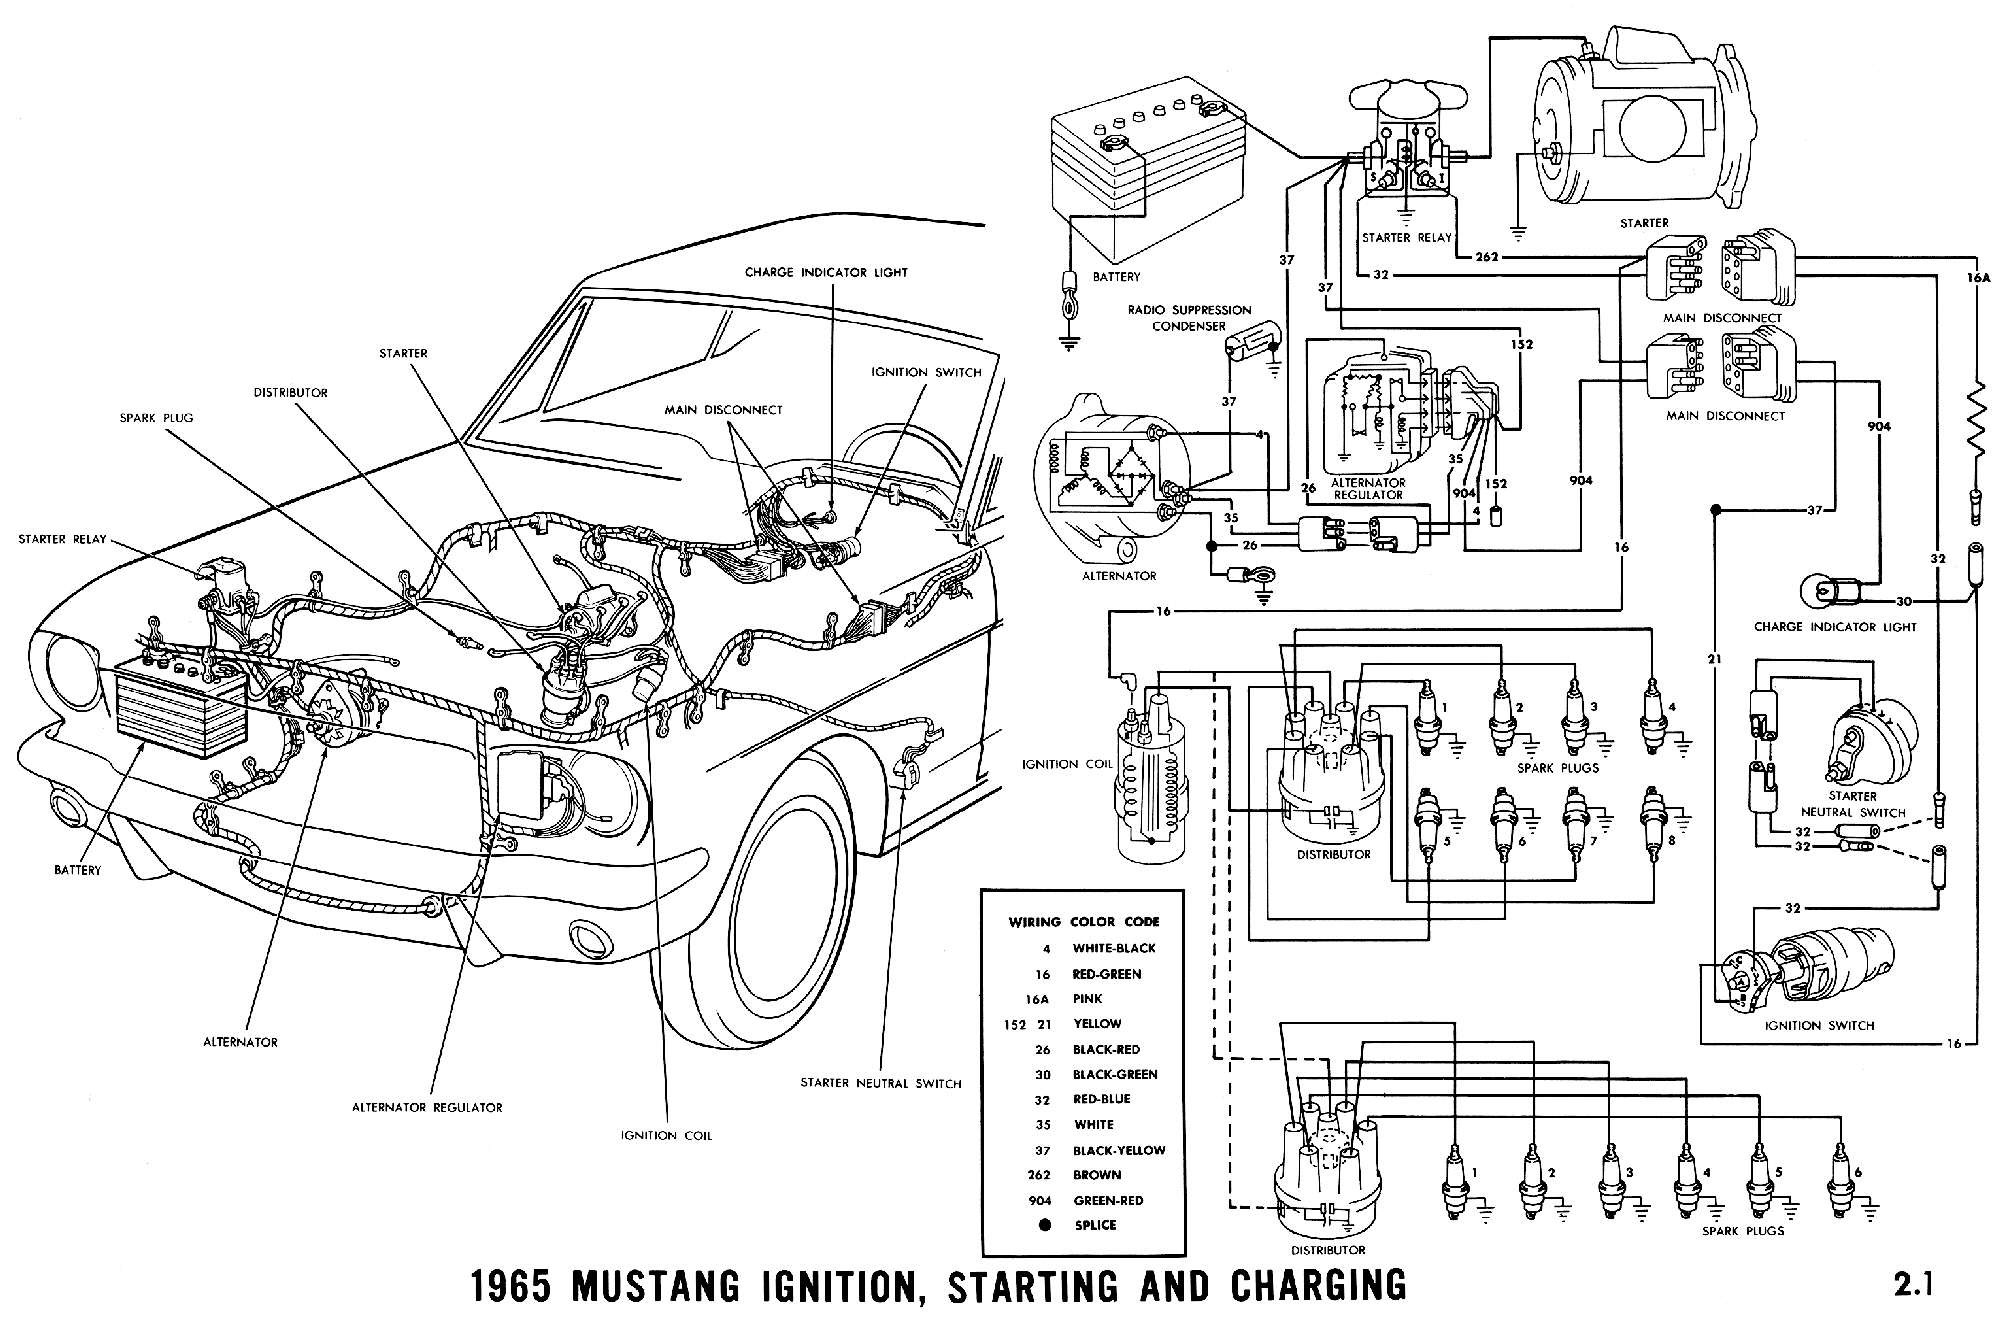 Diagram Of Car Engine Parts 2015 Mustang Engine Diagram Engine Car Parts and Ponent Diagram Of Diagram Of Car Engine Parts